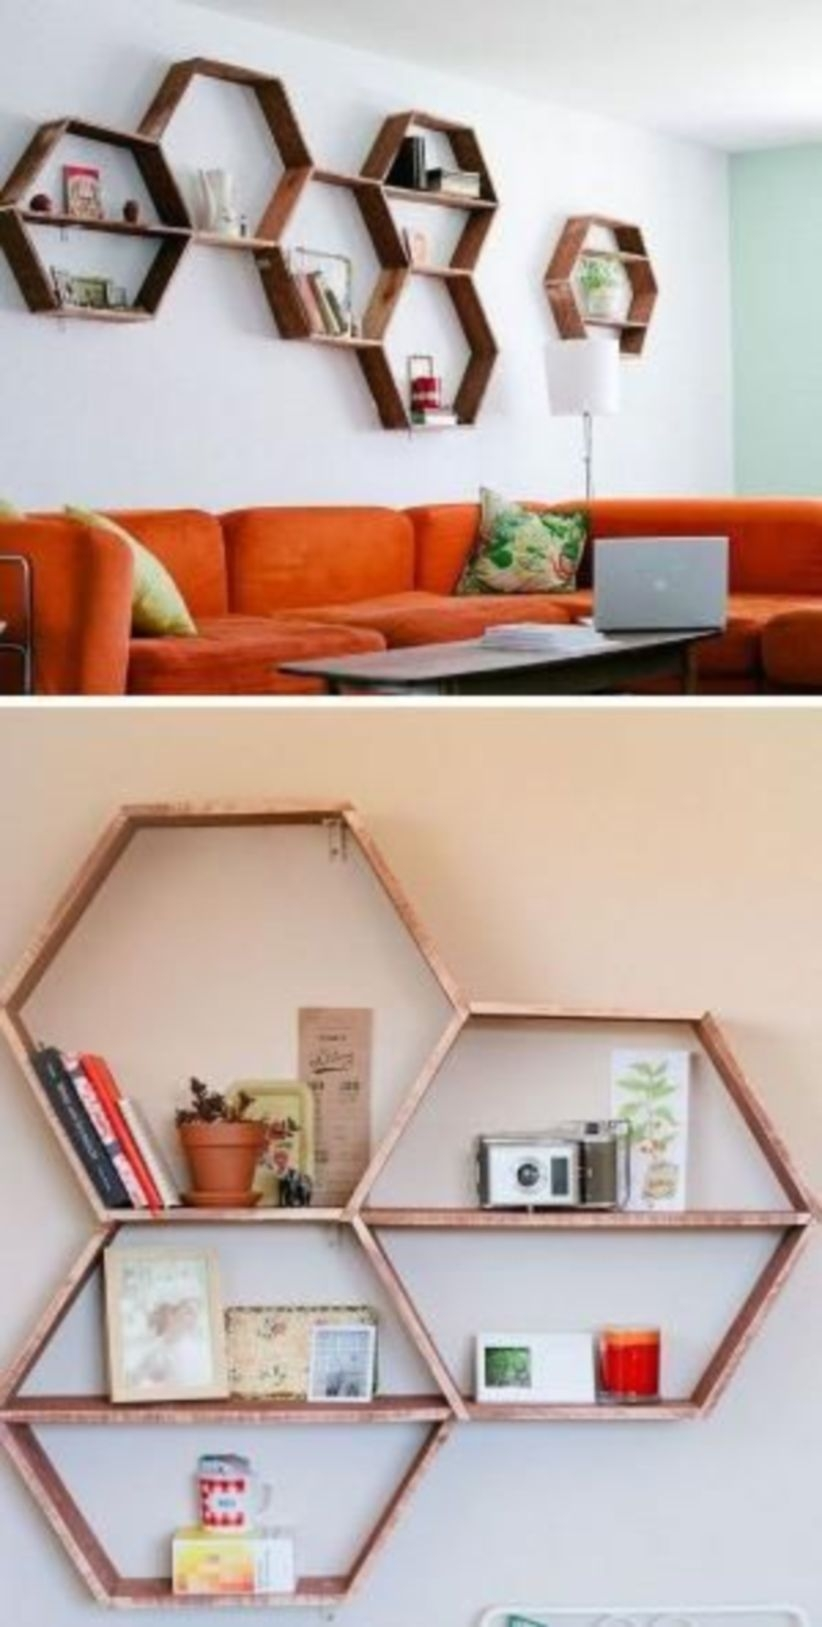 Diy honeycomb shelves living room decor for apartment